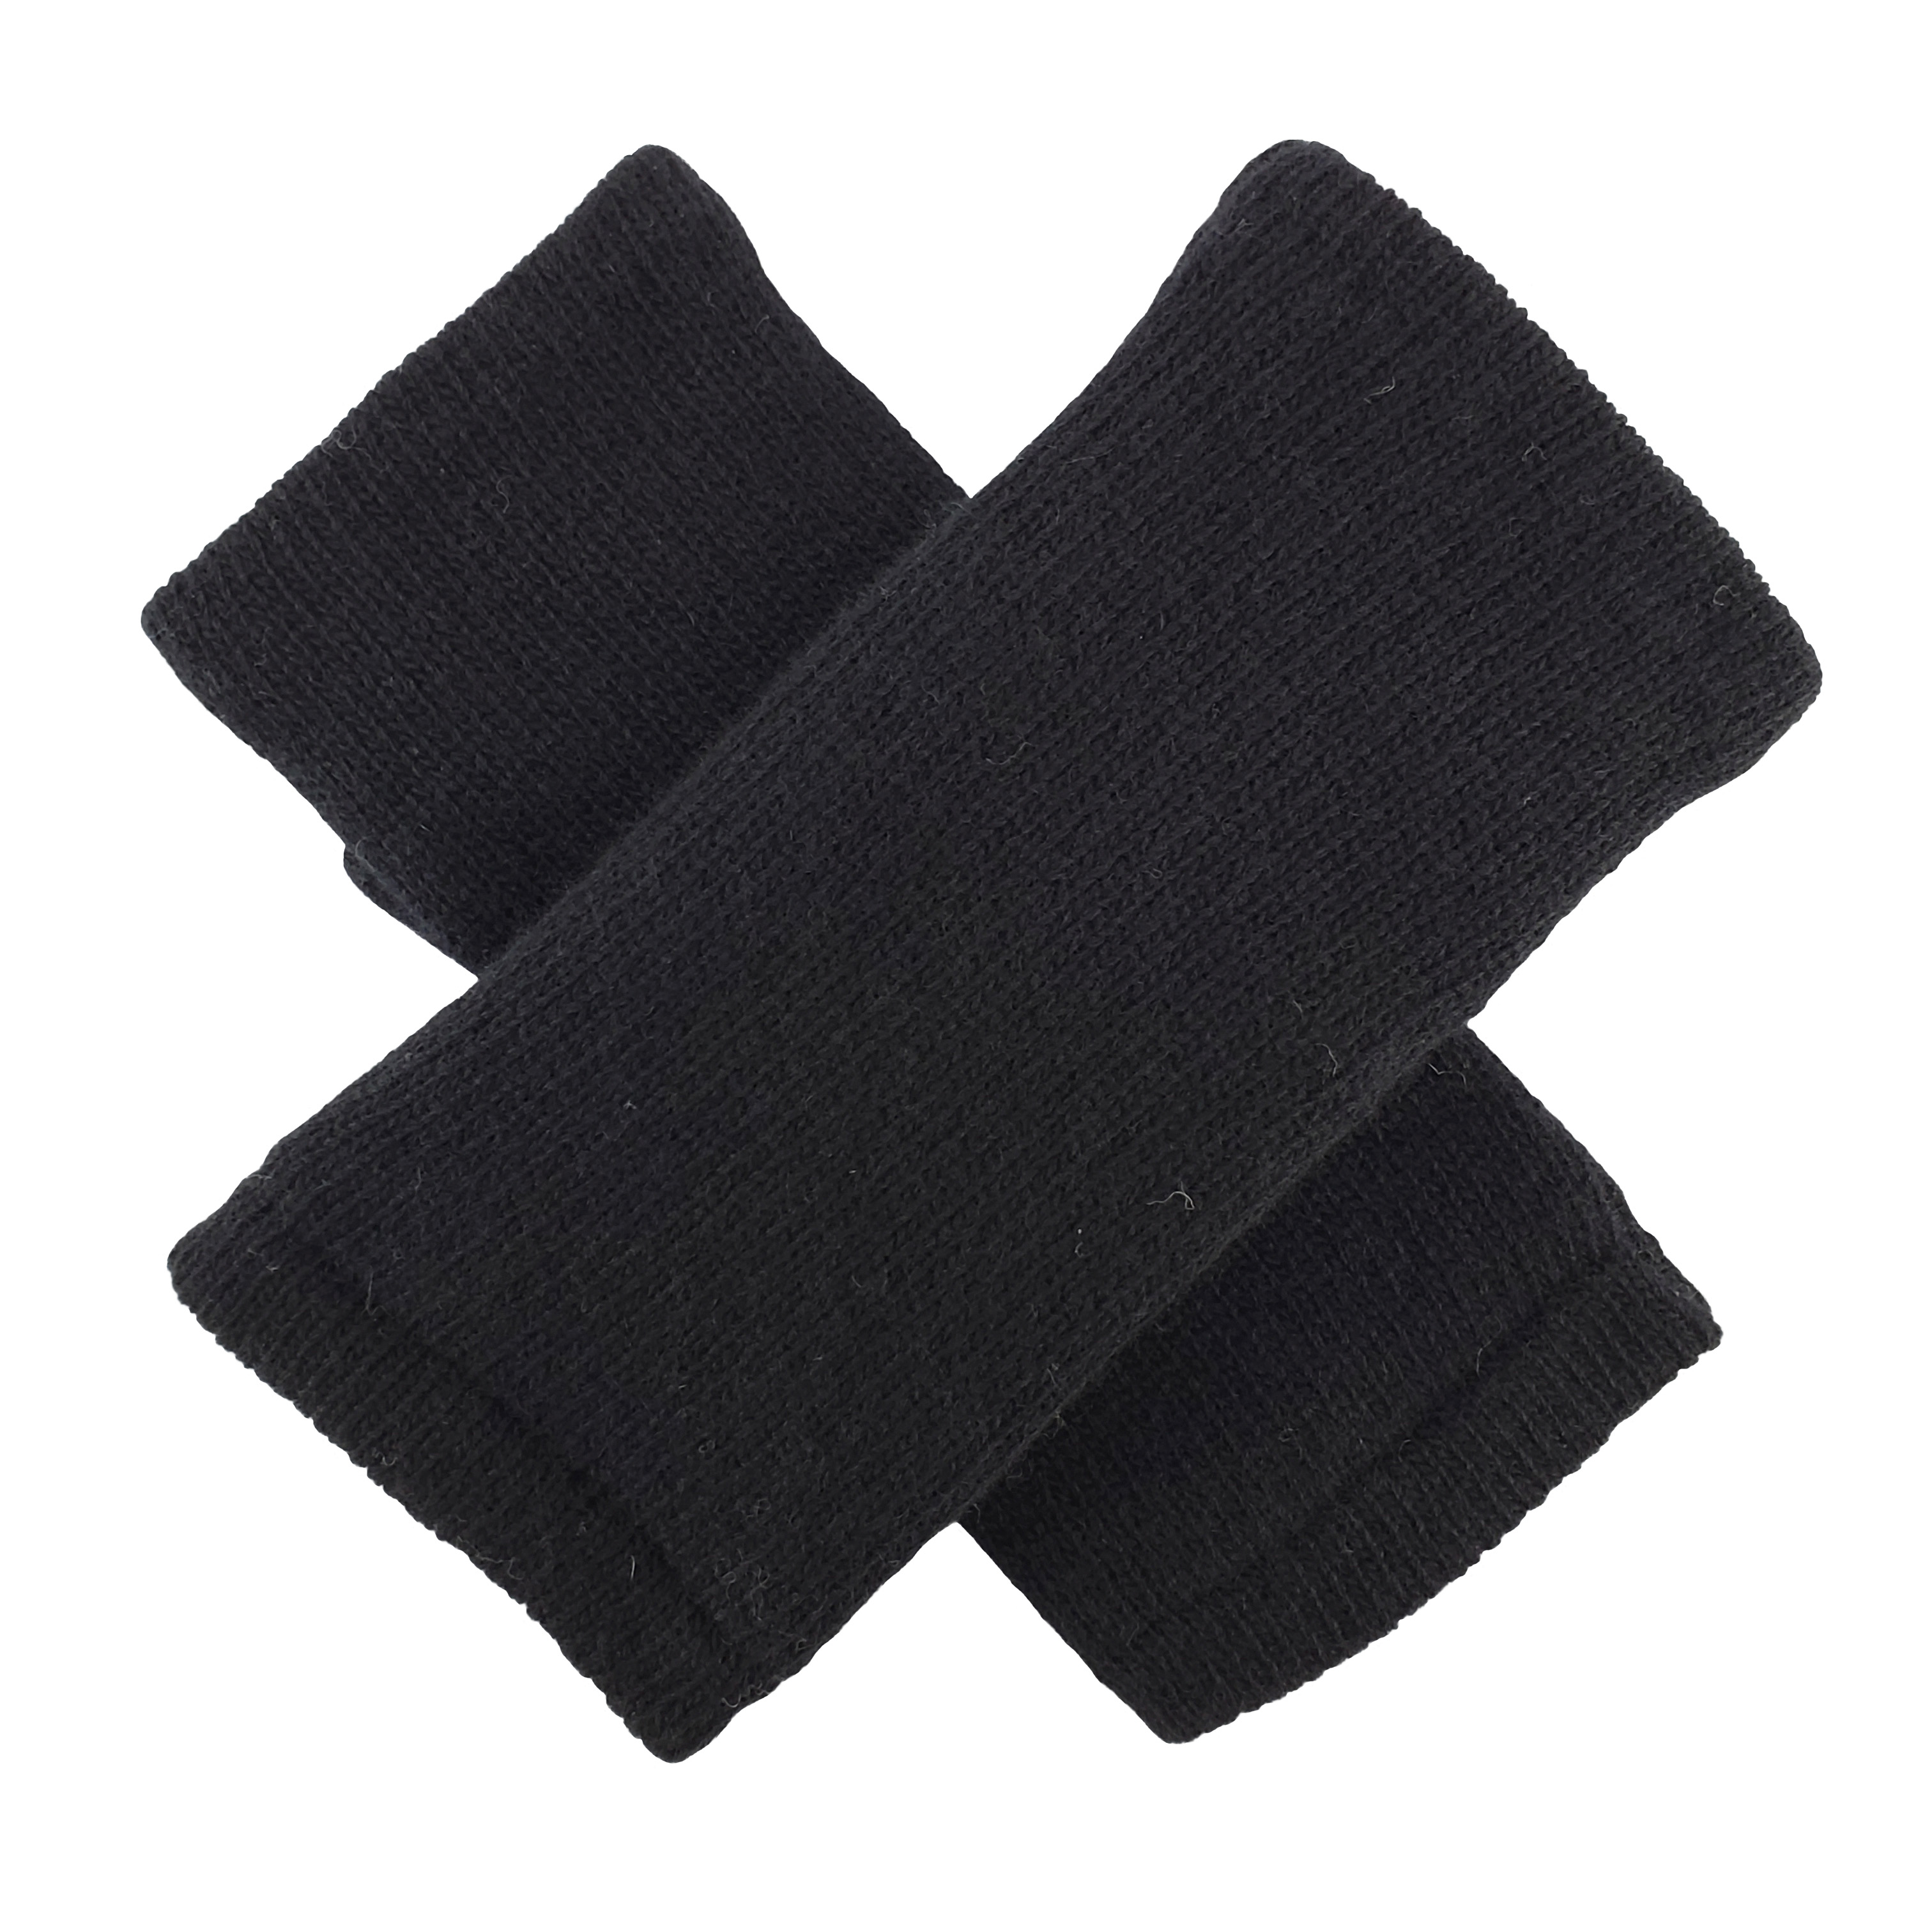 Bruceriver Ladies' Wool Knit Fingerless Glove With Thinsulate Lining Plain Design